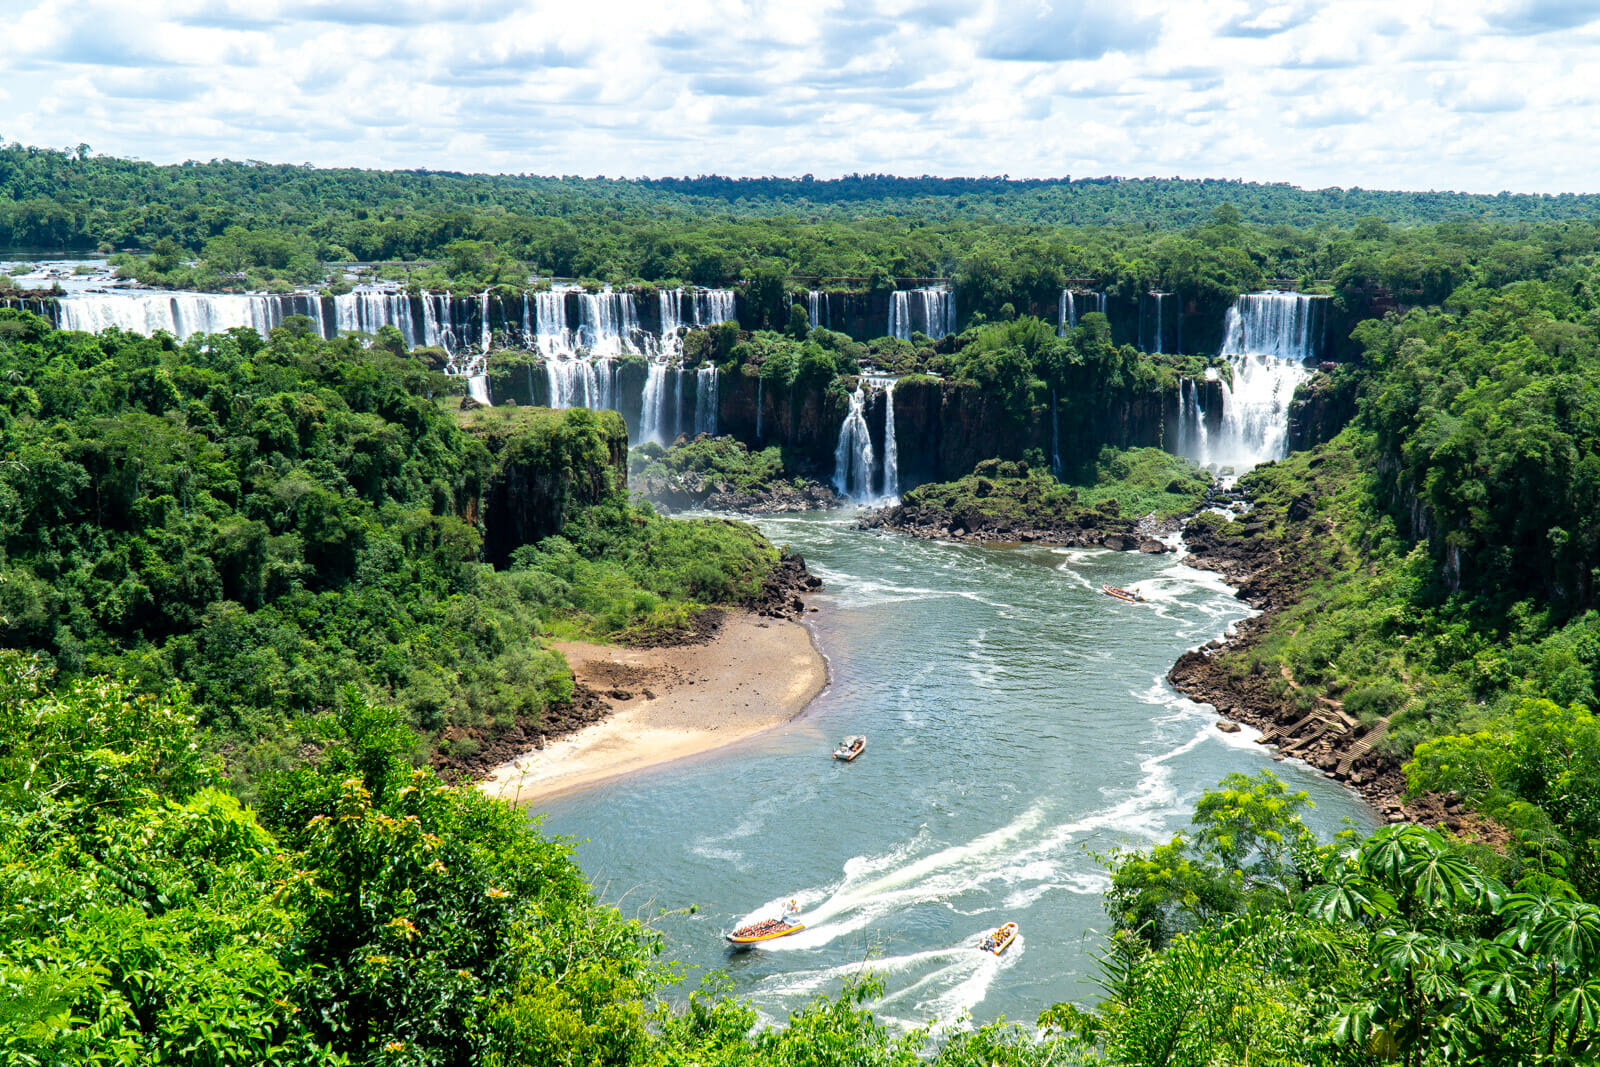 Brazil Side Iguazu Falls: The Ultimate Guide